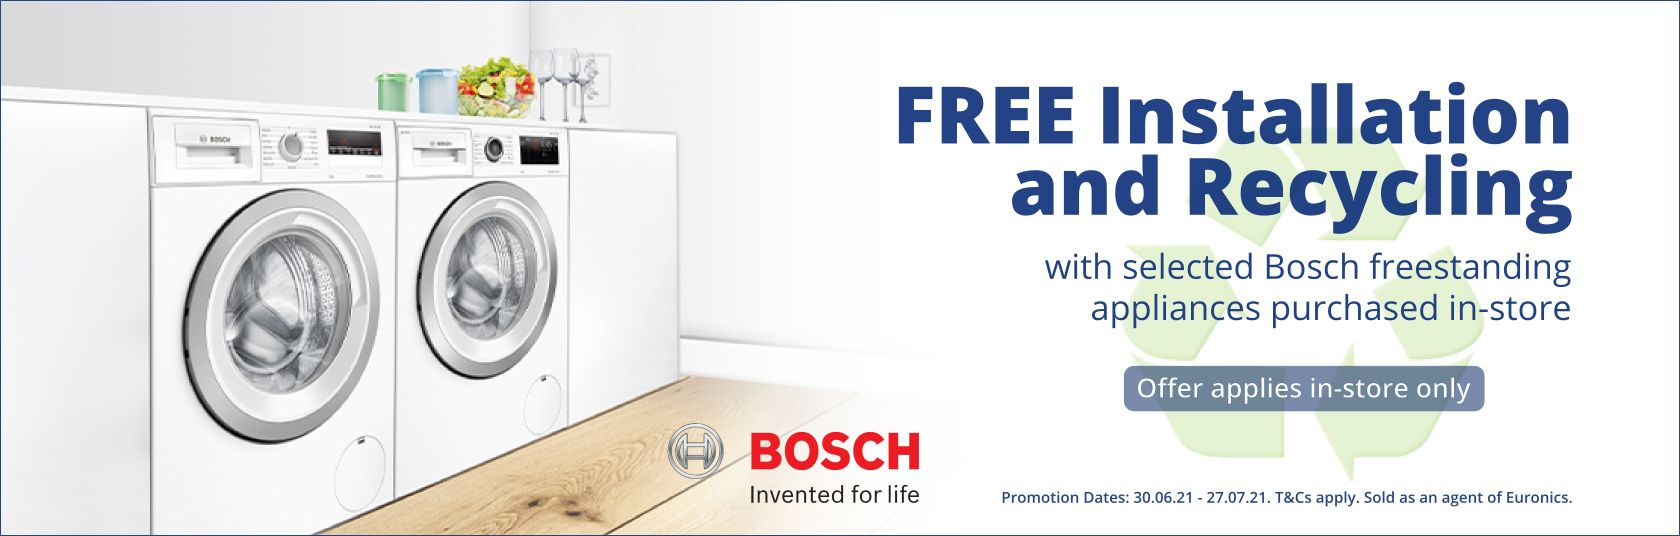 Free Installation & Recycling with selected Bosch freestanding products purchased in-store